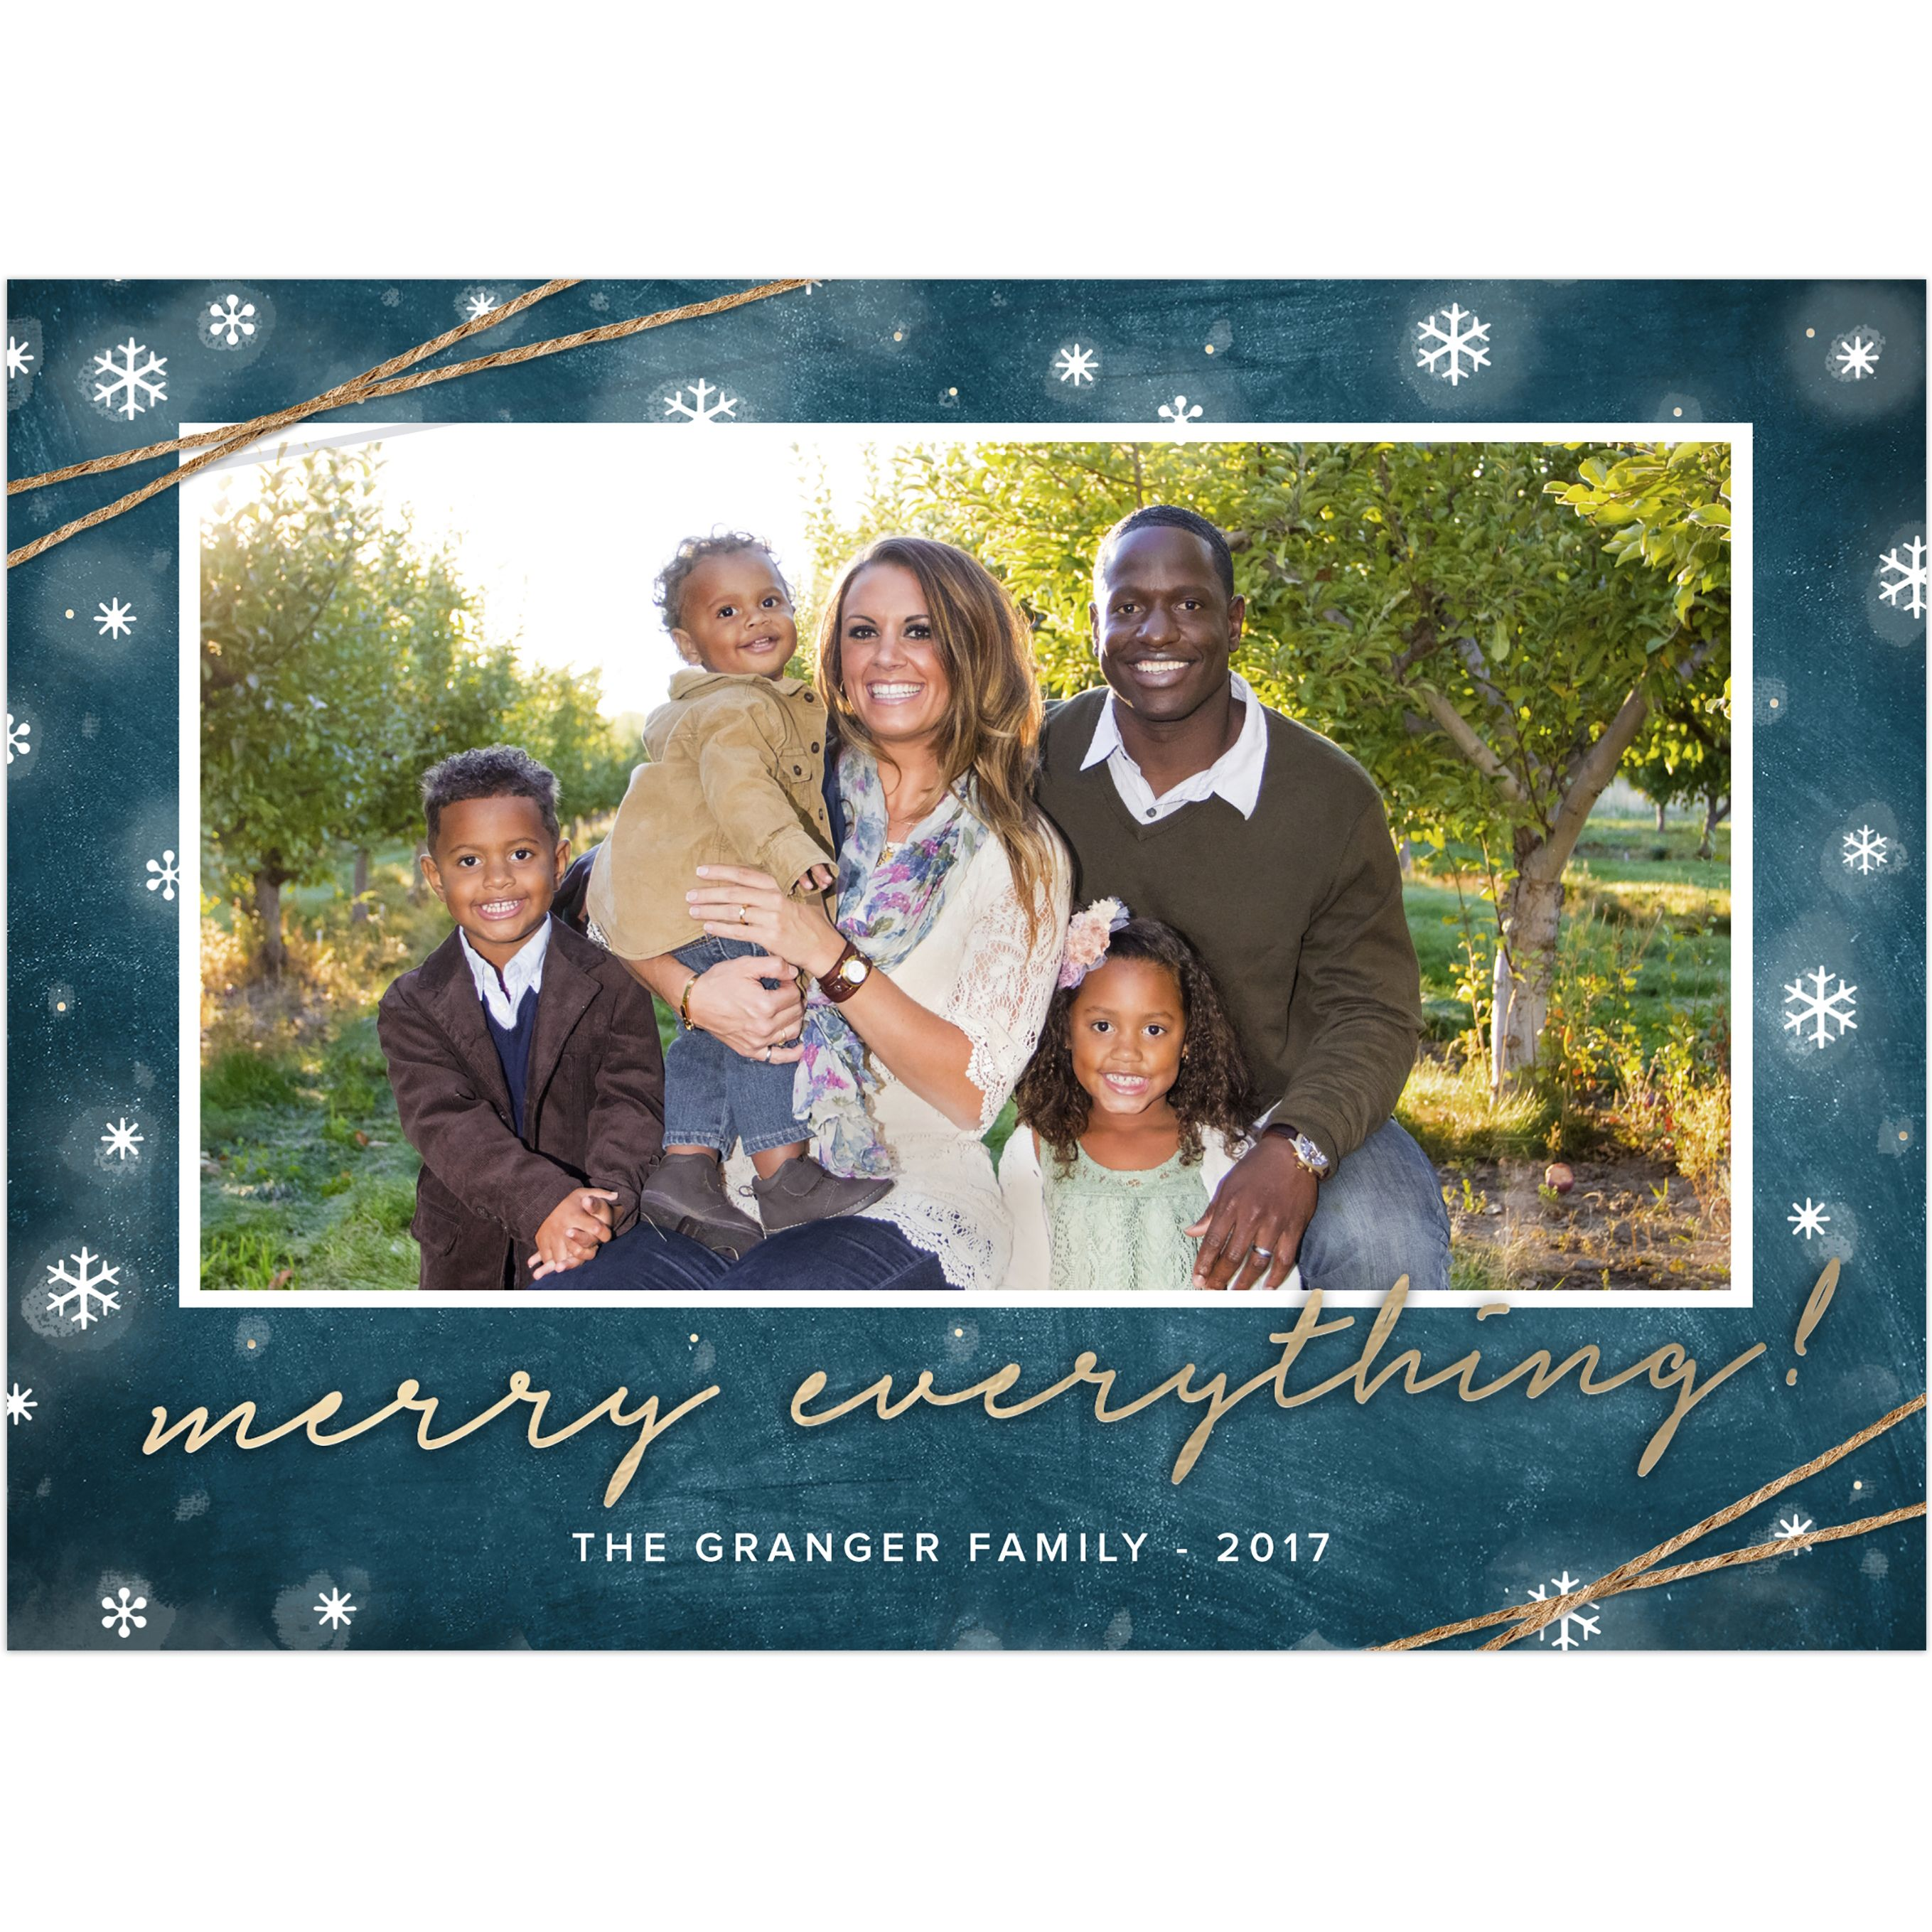 Rustic Merry Everything - 5x7 Personalized Christmas Card